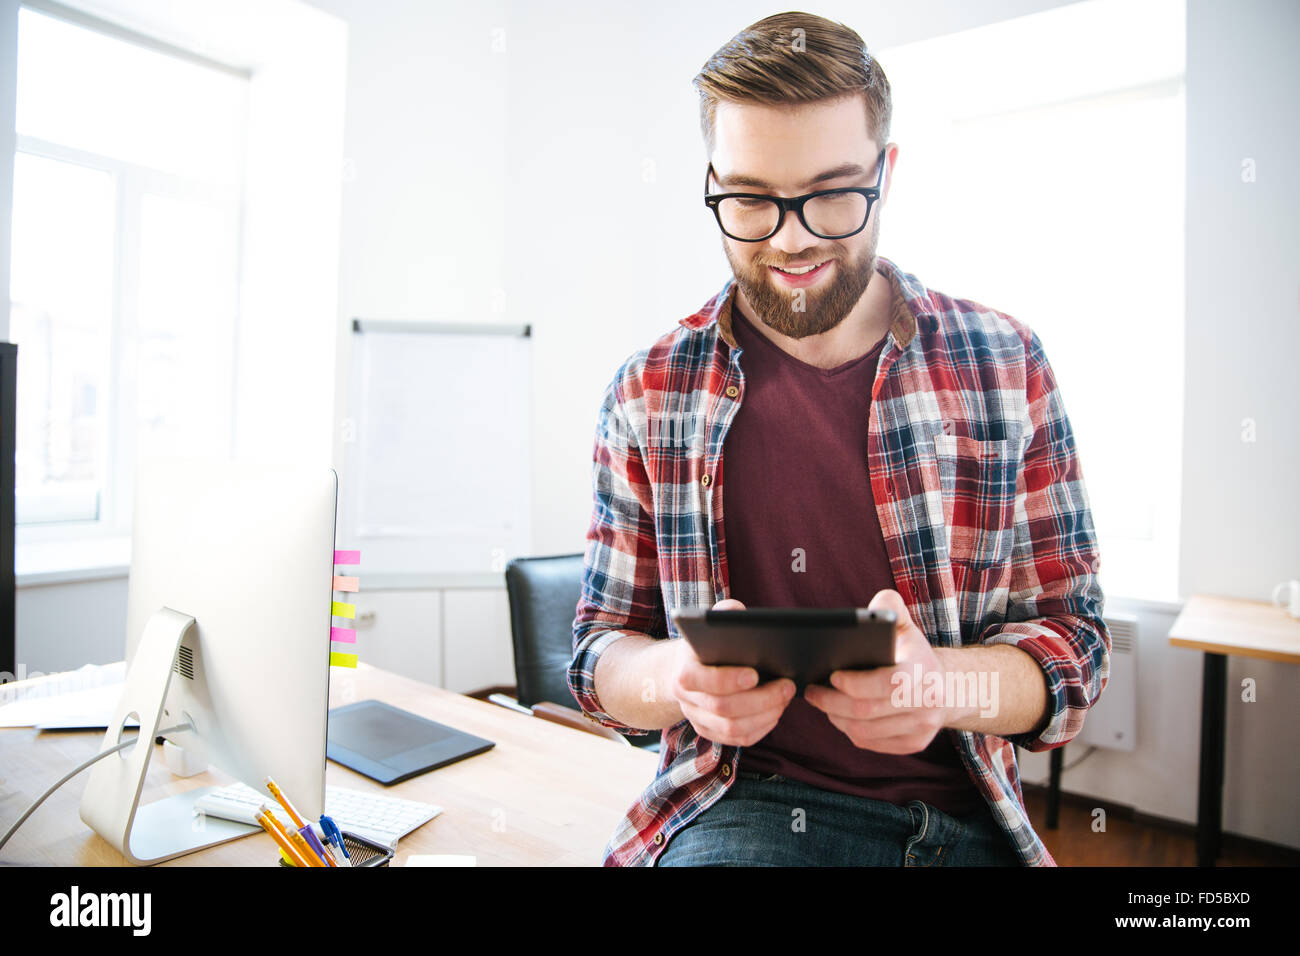 Happy handsome man with beard in plaid shirt and glasses sitting on the table in office and using tablet - Stock Image